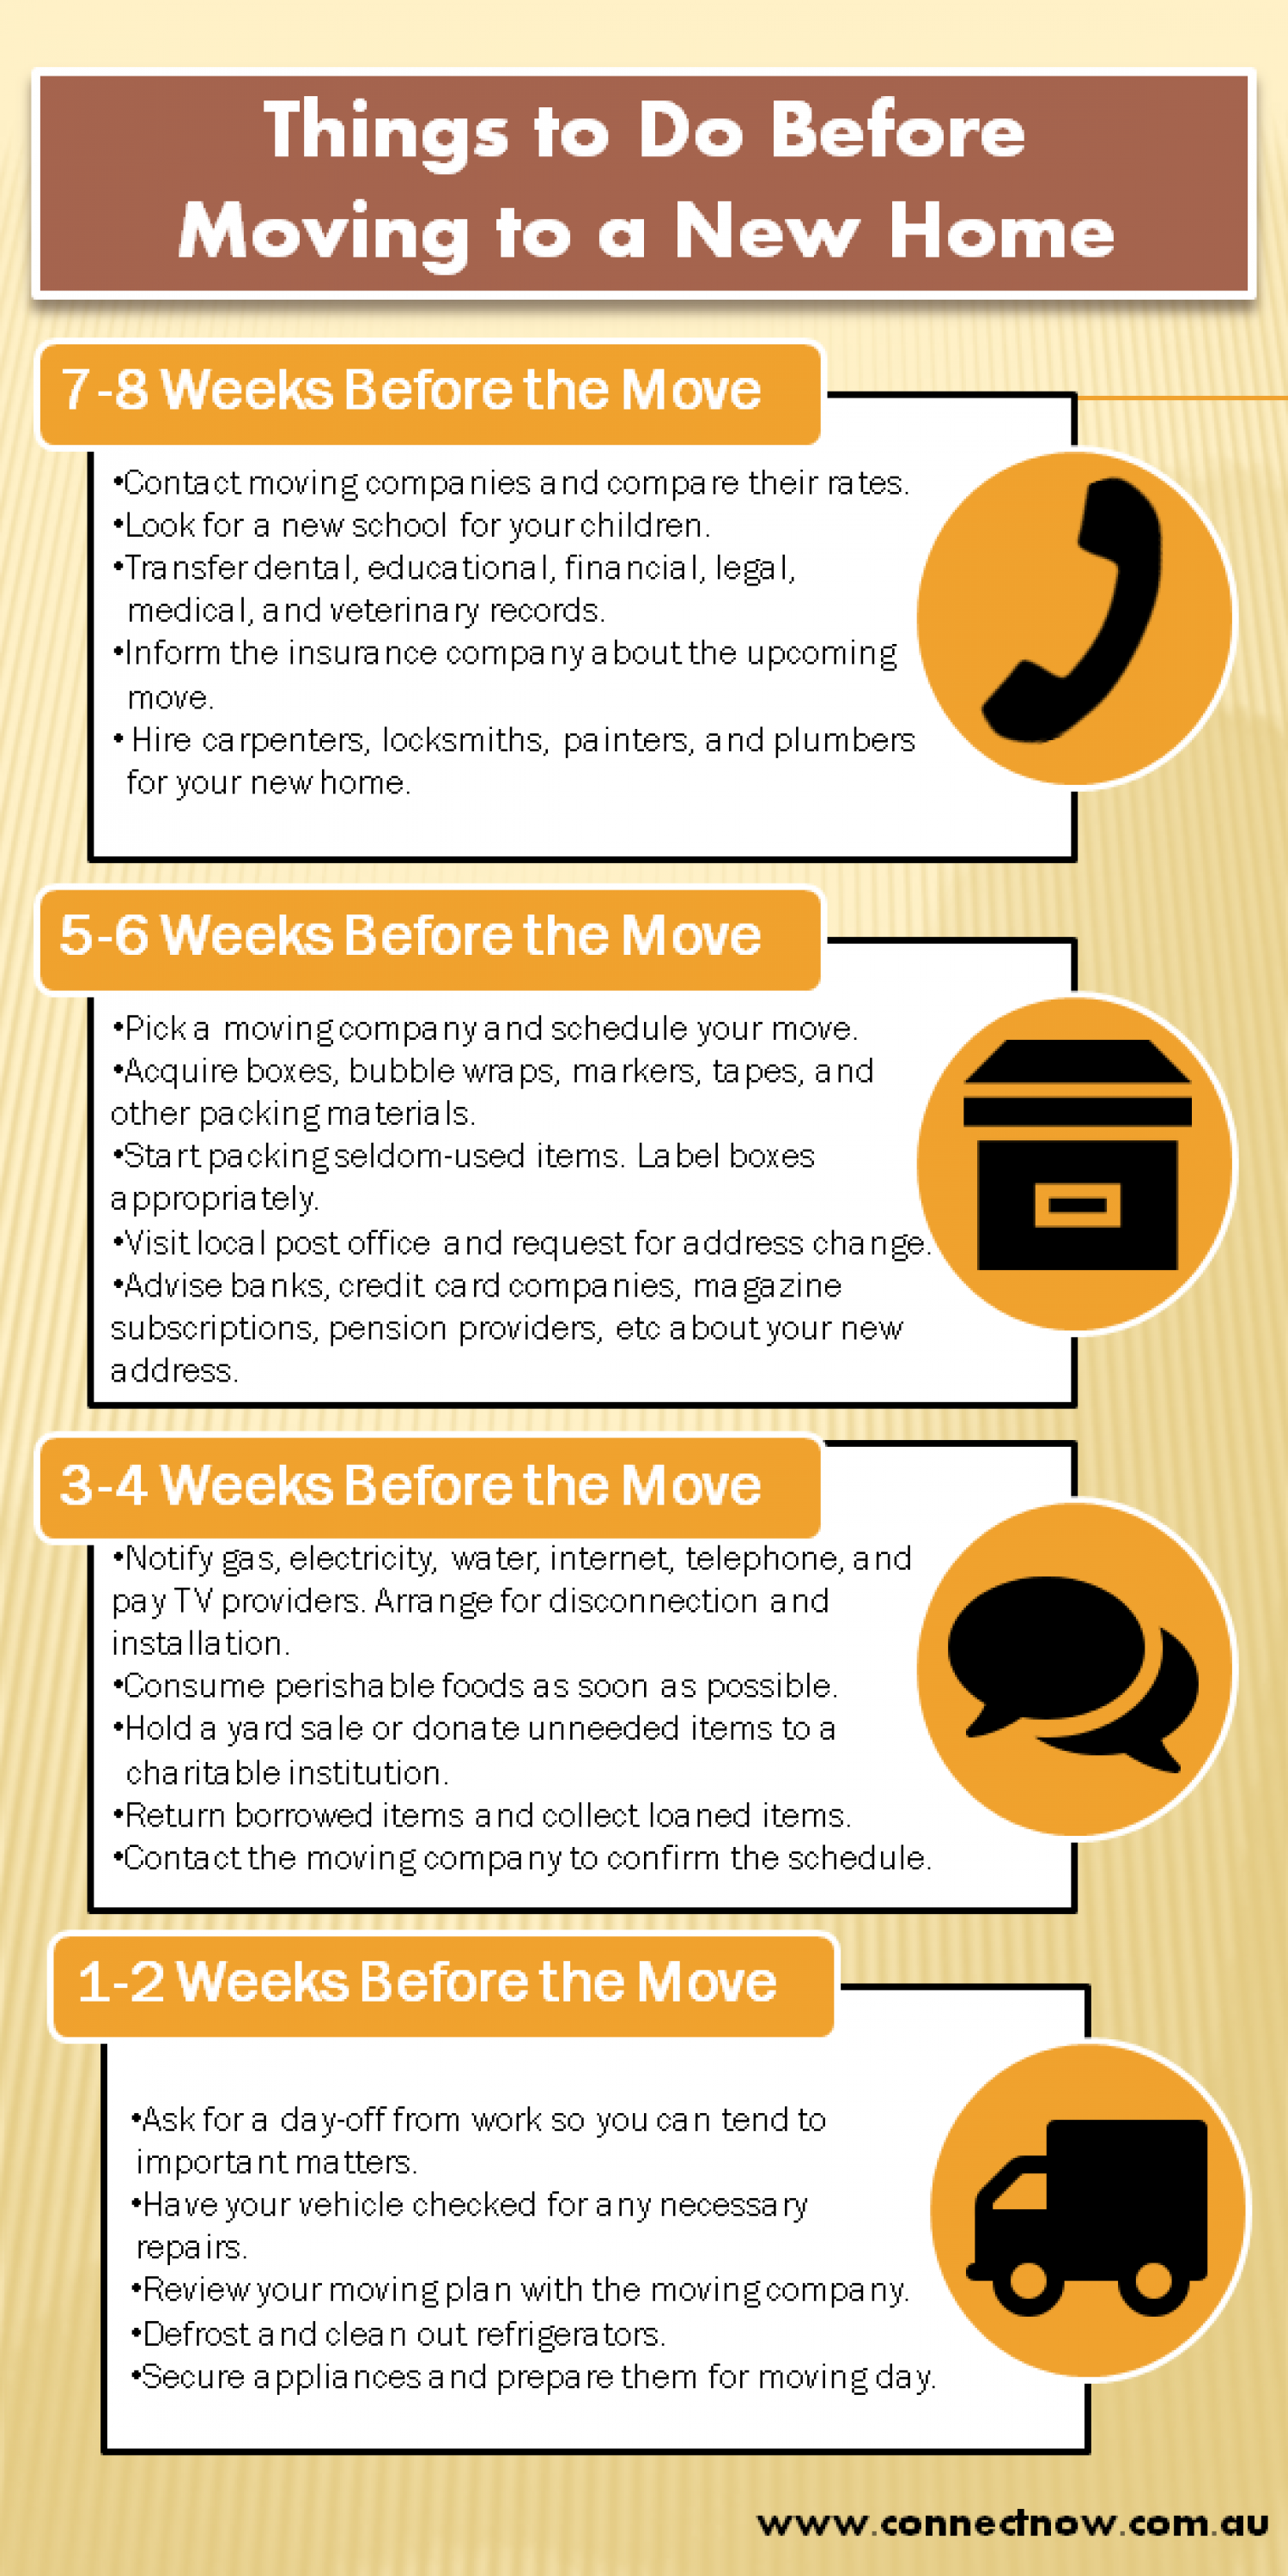 Things to do before moving to a new home infographic for Things to do before moving into a new house